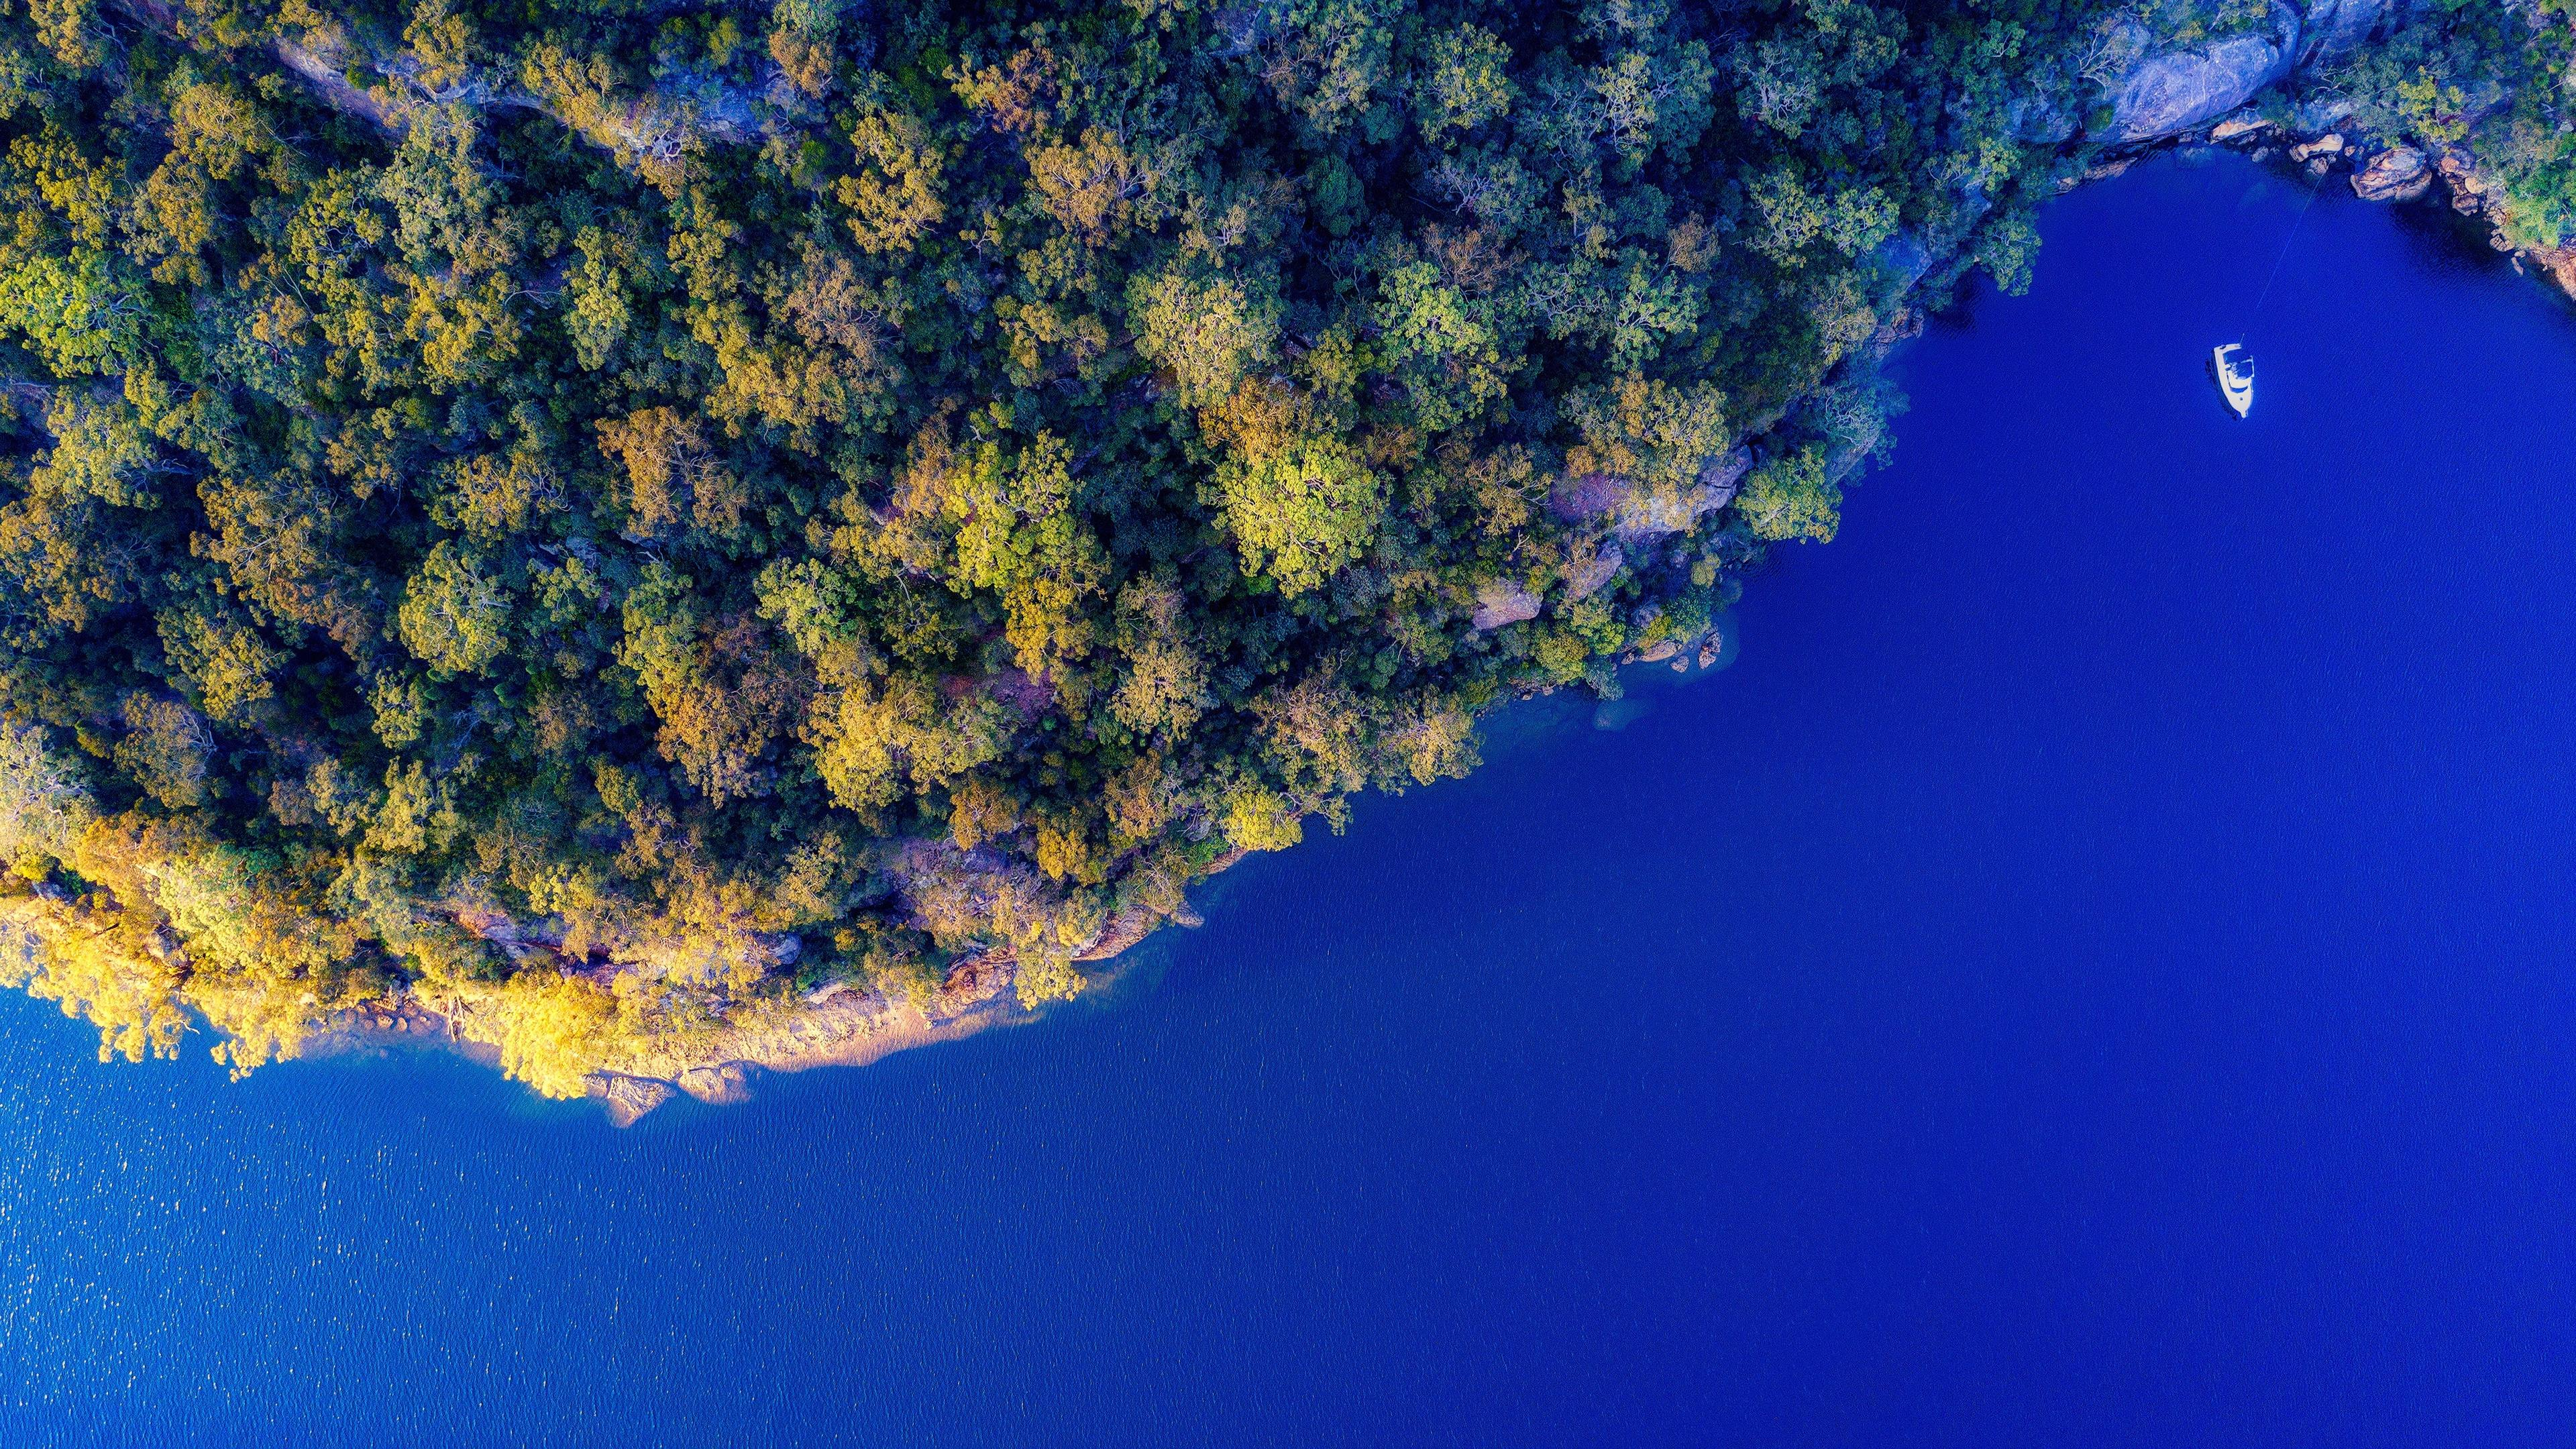 top view of island 4k 1551644267 - Top View Of Island 4k - photography wallpapers, nature wallpapers, island wallpapers, hd-wallpapers, aerial wallpapers, 4k-wallpapers